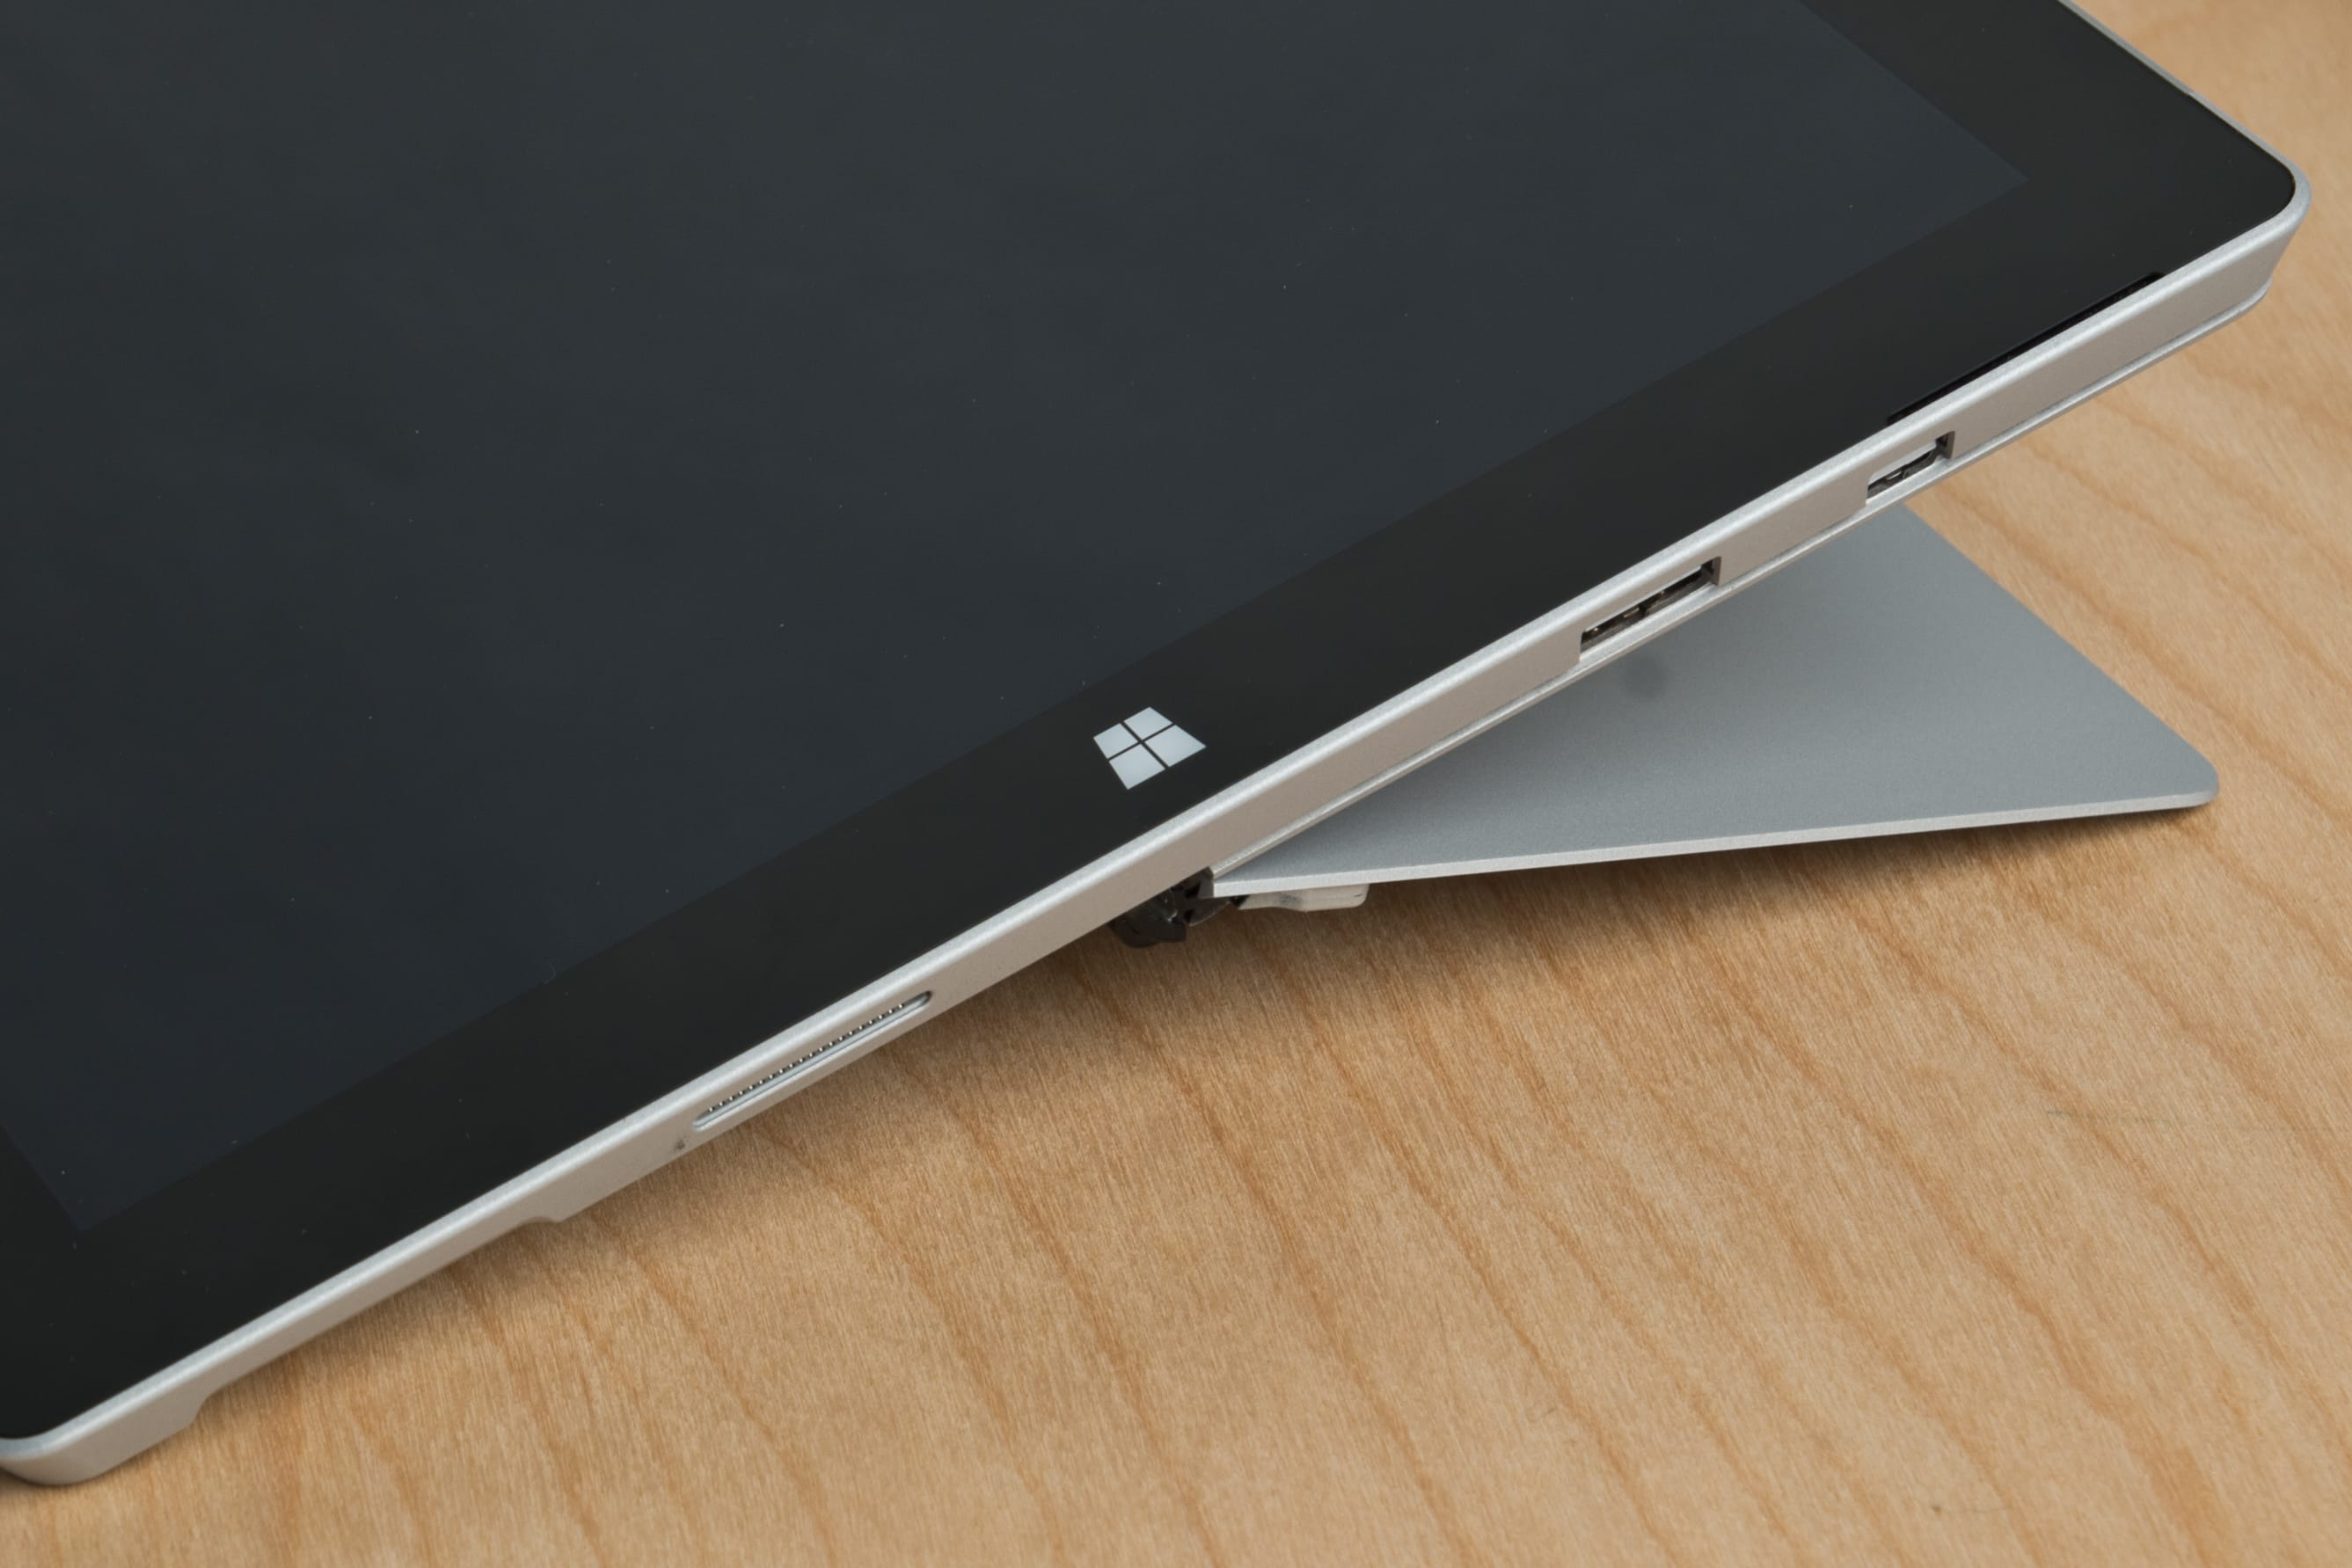 A closer look at the Microsoft Surface Pro 3's stand.